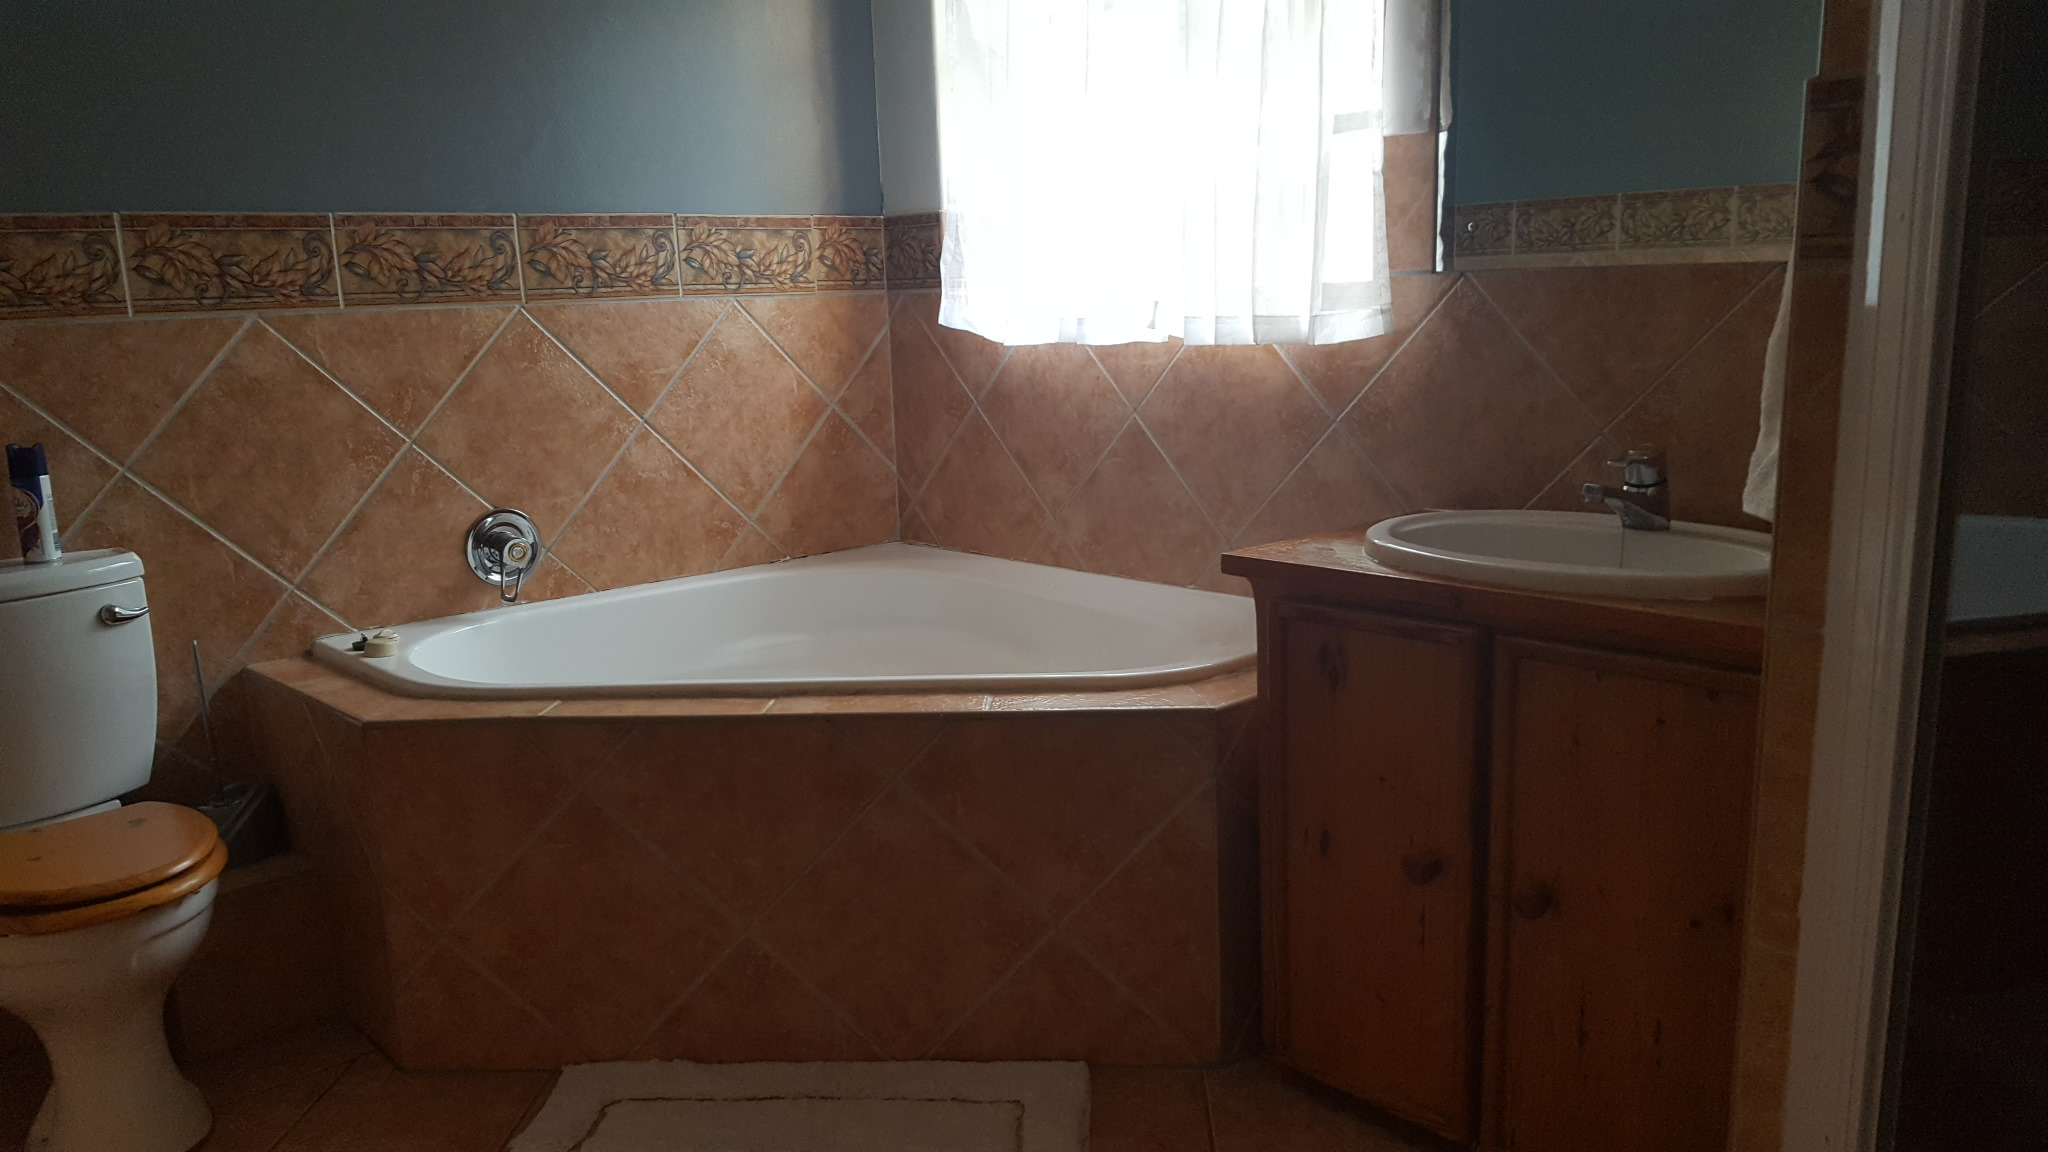 5 Bedroom House for sale in Bluewater Bay ENT0067493 : photo#19